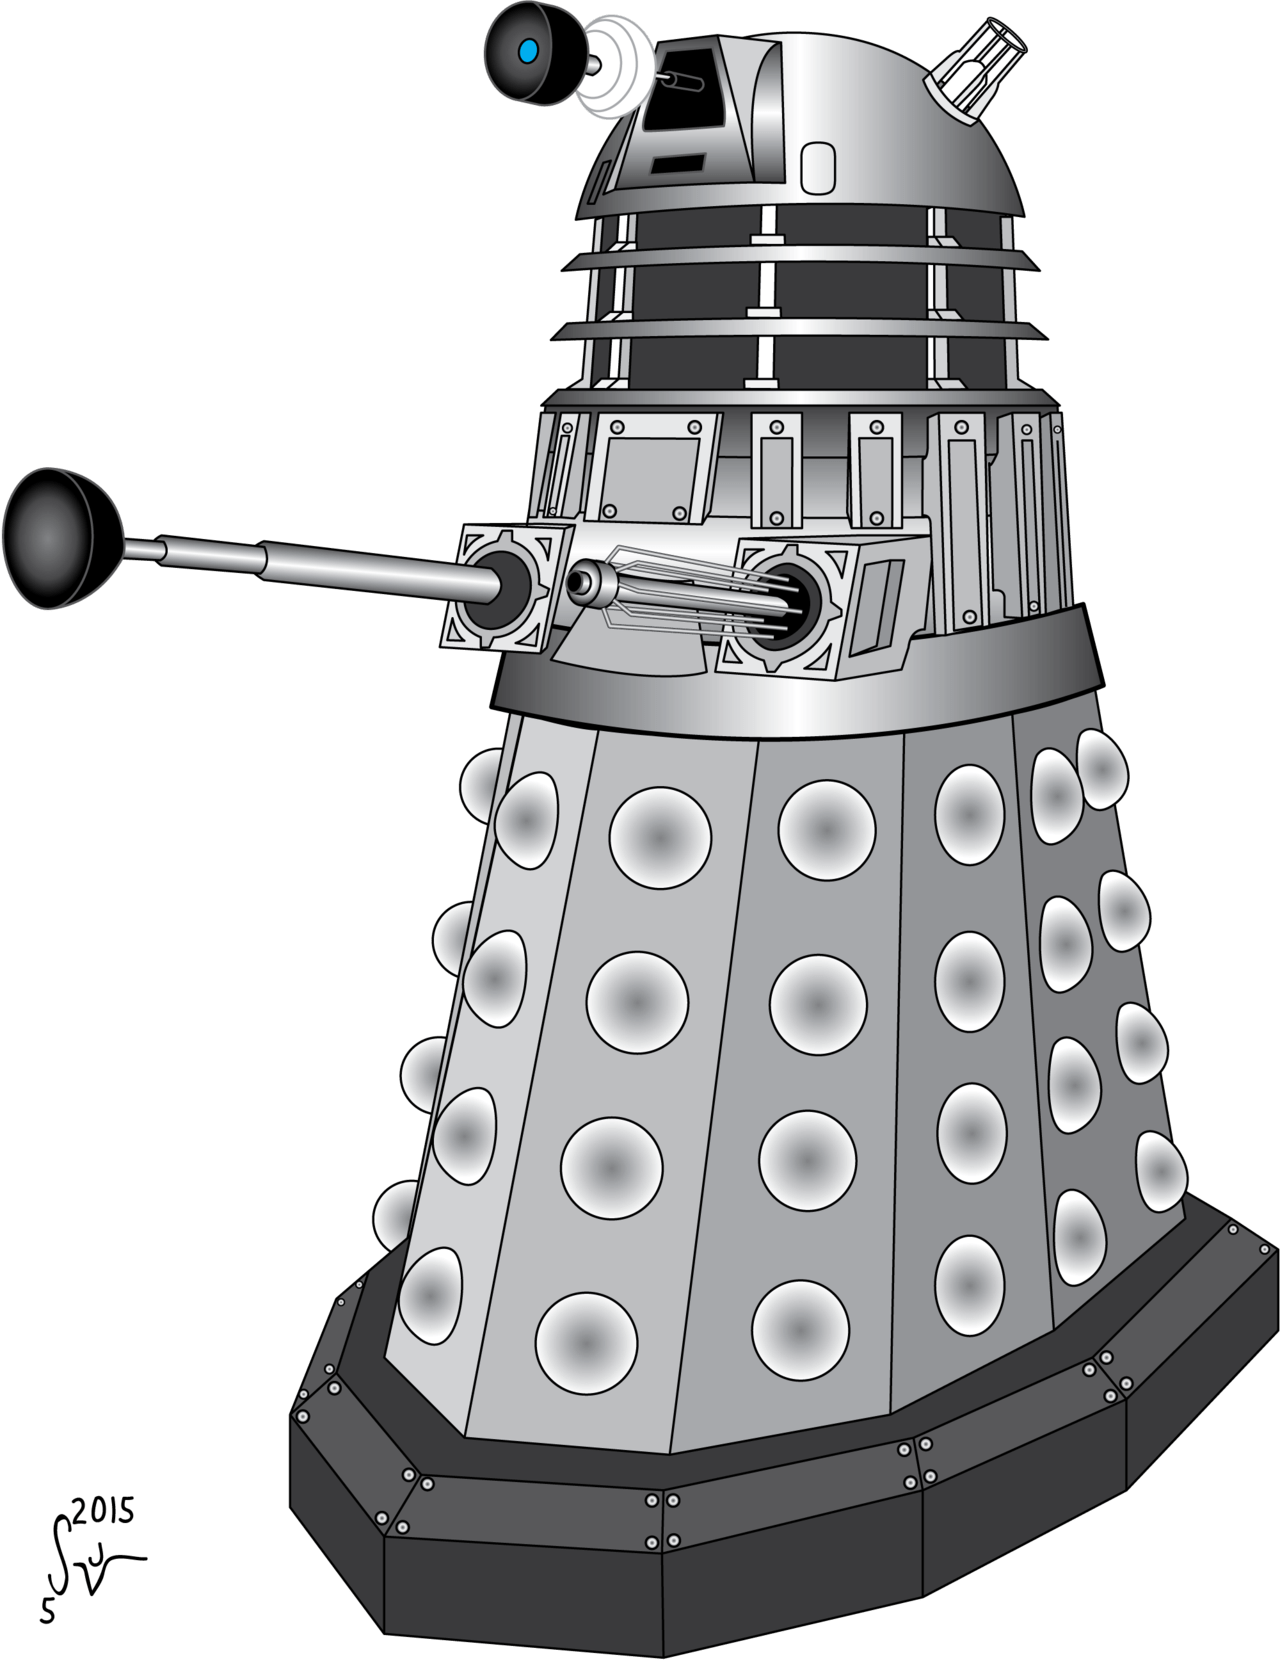 hight resolution of doctor who clipart dalek dr who dalek png 1280x1660 png download